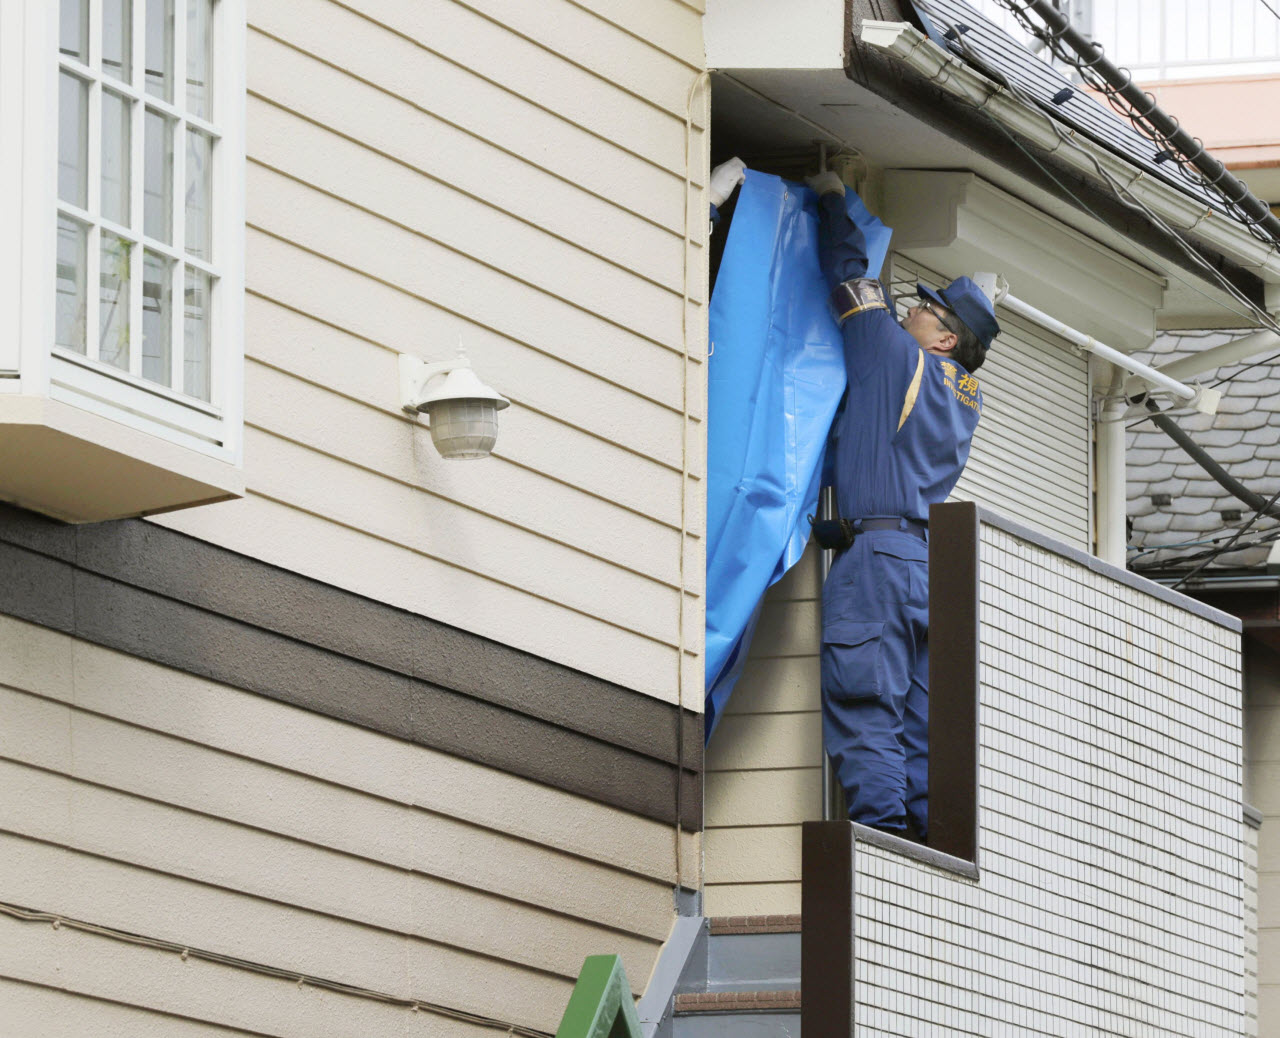 A police officer places a blue sheet on part of an apartment house in Zama, Kanagawa Prefecture on Oct. 31, 2017 where police found nine dismembered bodies.